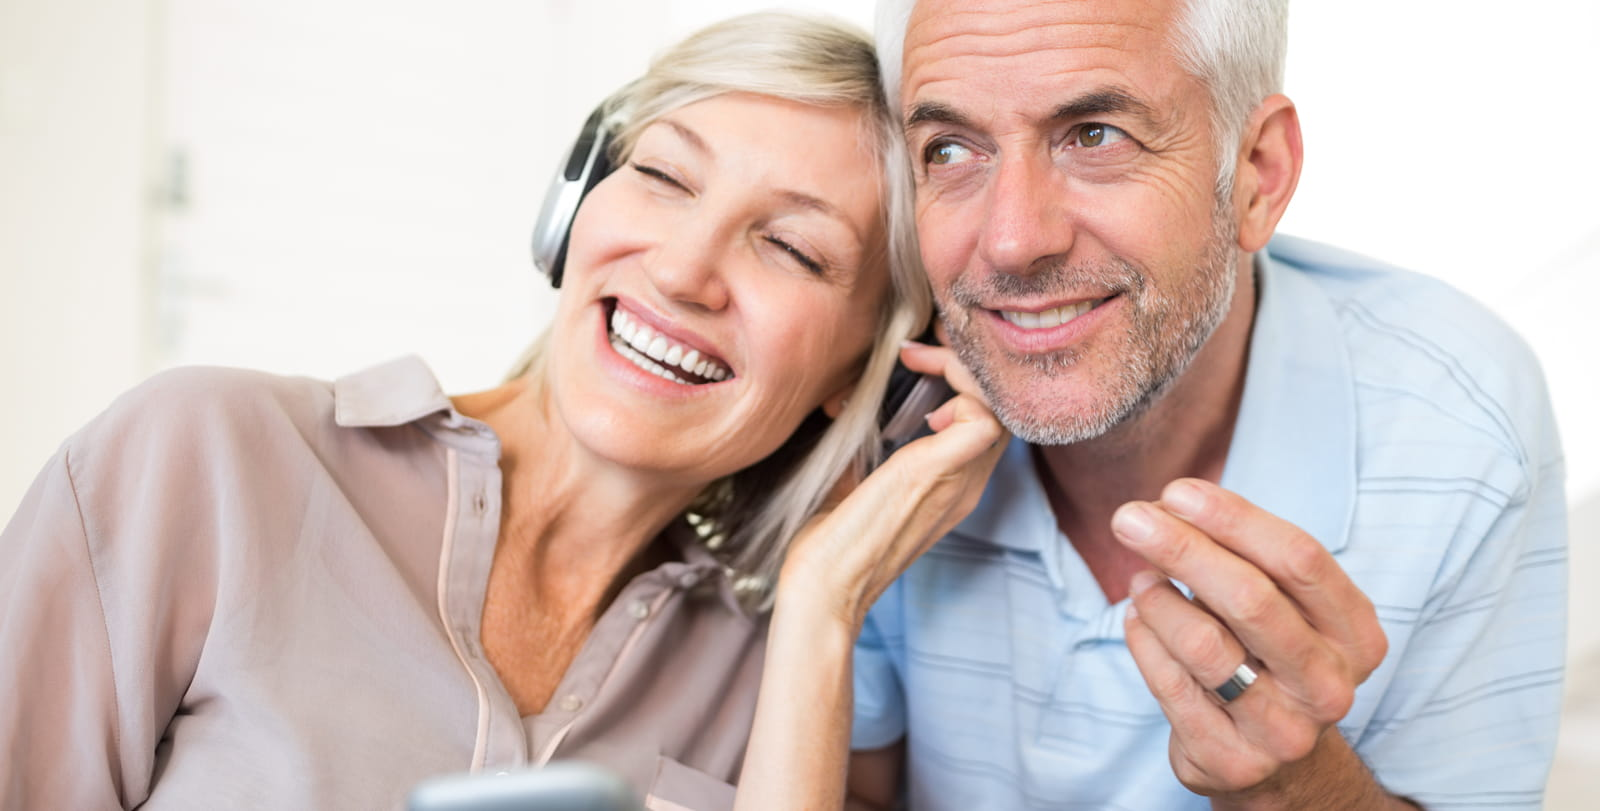 Couple with headphones on